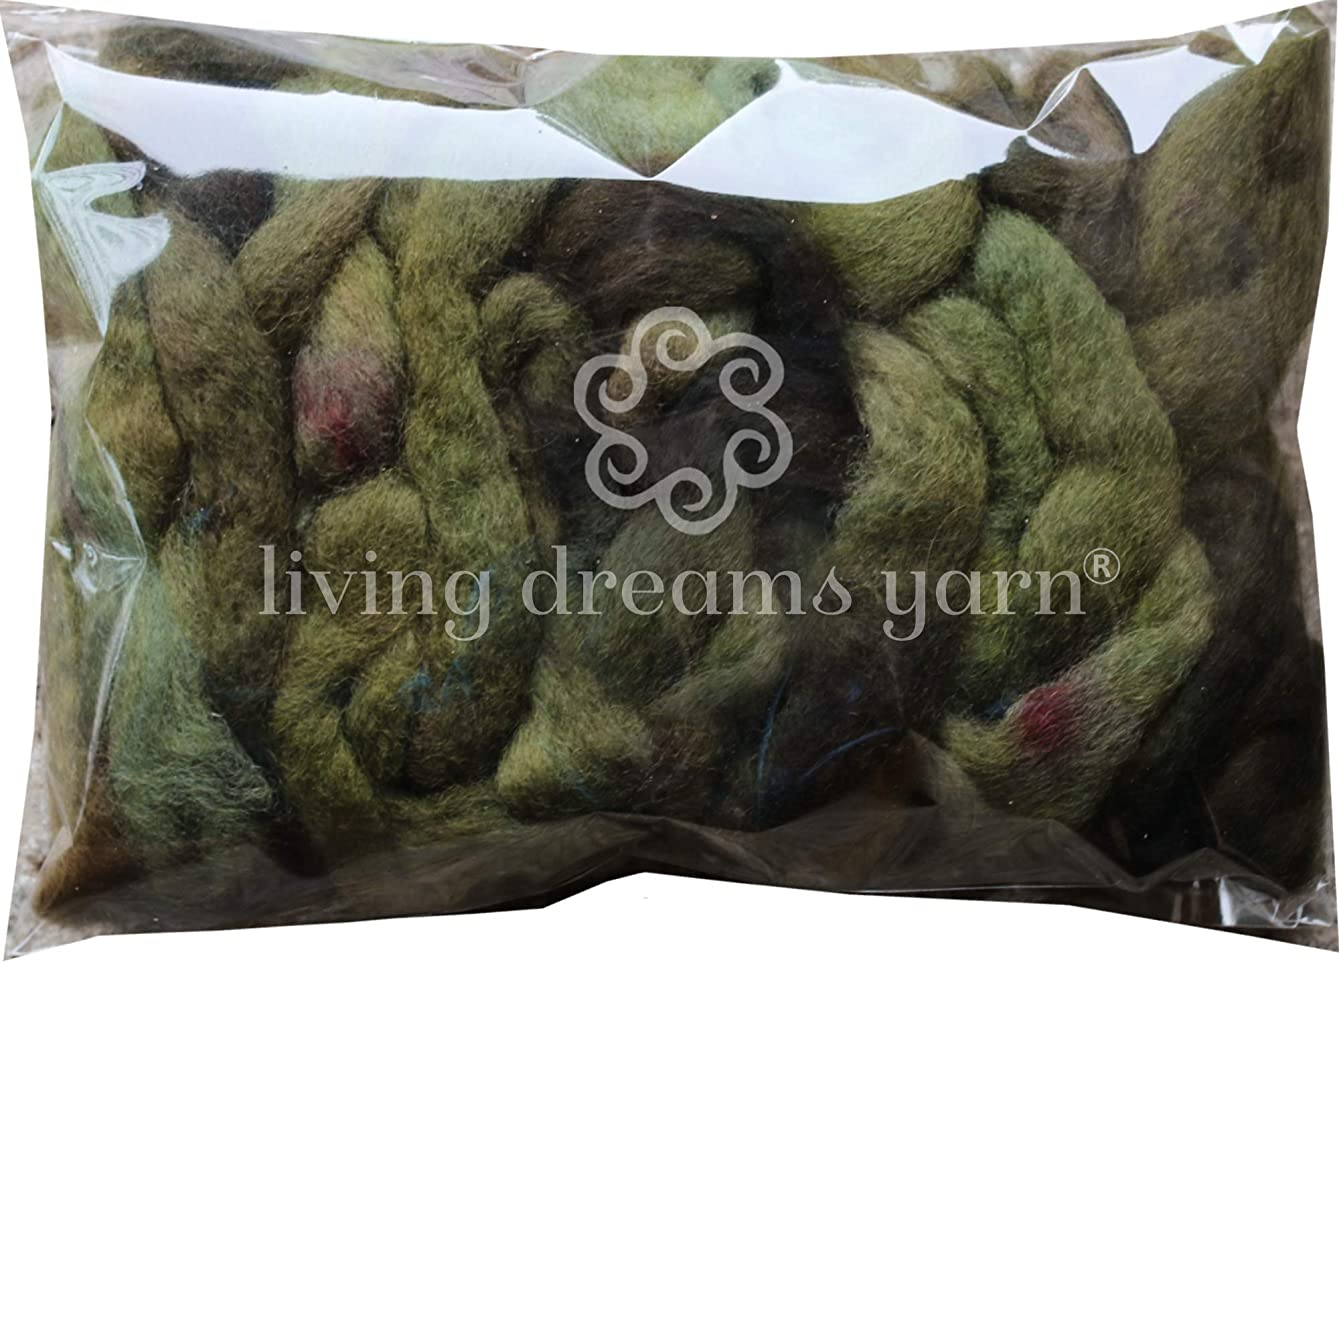 Wool Roving Hand Dyed. Super Soft BFL Combed Top Pre-Drafted for Easy Hand Spinning. Artisanal Craft Fiber ideal for Felting, Weaving, Wall Hangings and Embellishments. 1 Ounce. Bronze Green yrjxwn568676